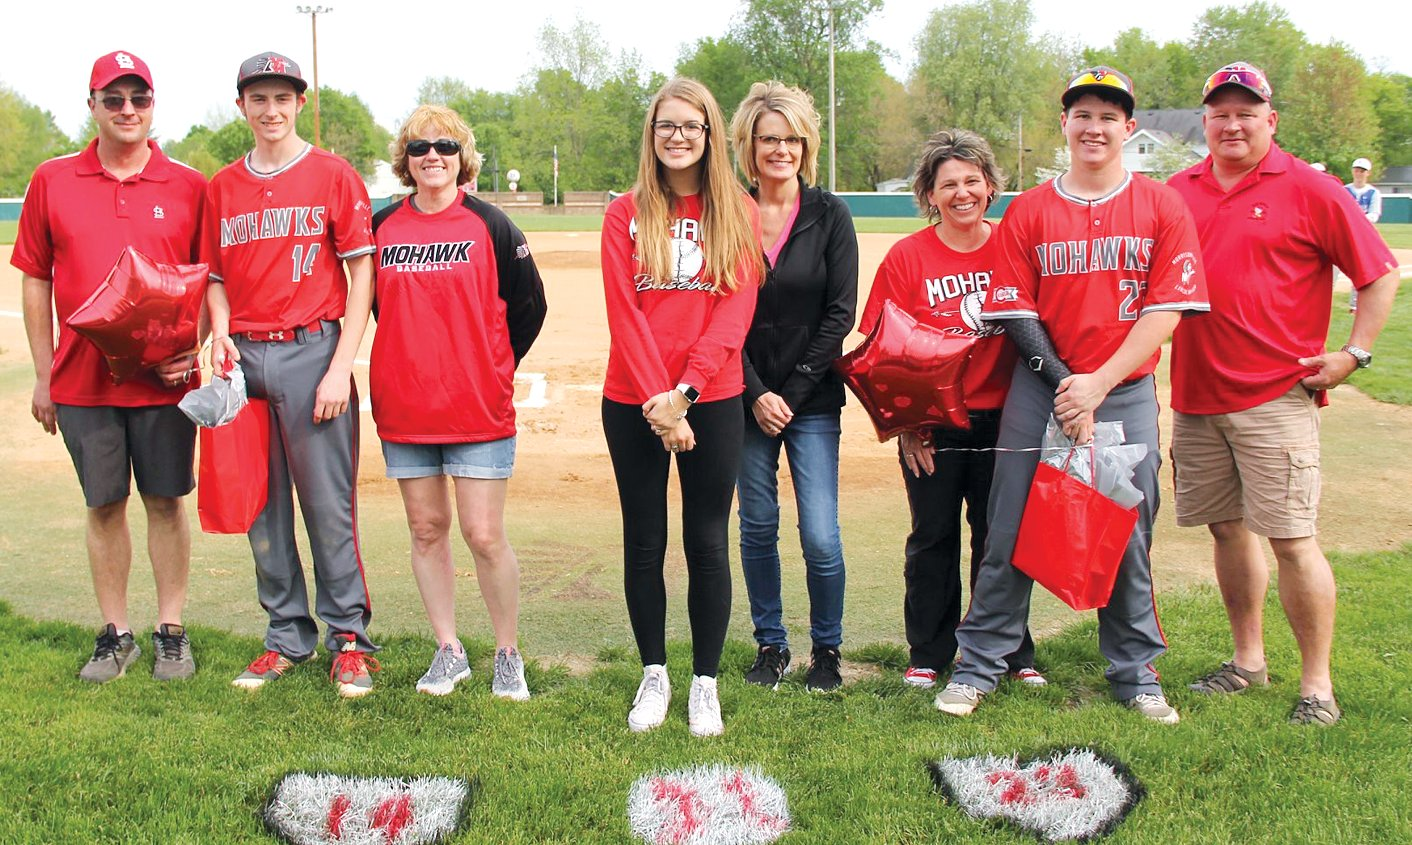 Three senior members of the Morrisonville/Lincolnwood baseball team were honored prior to the Mohawks' game on Tuesday, May 7, in Morrisonville. From the left are Andrew Skinner, with parents Danny and Rachel Skinner; Cameron Krager with mom Lori Krager; and Dade Pitchford, with parents Dana and Doug Pitchford.